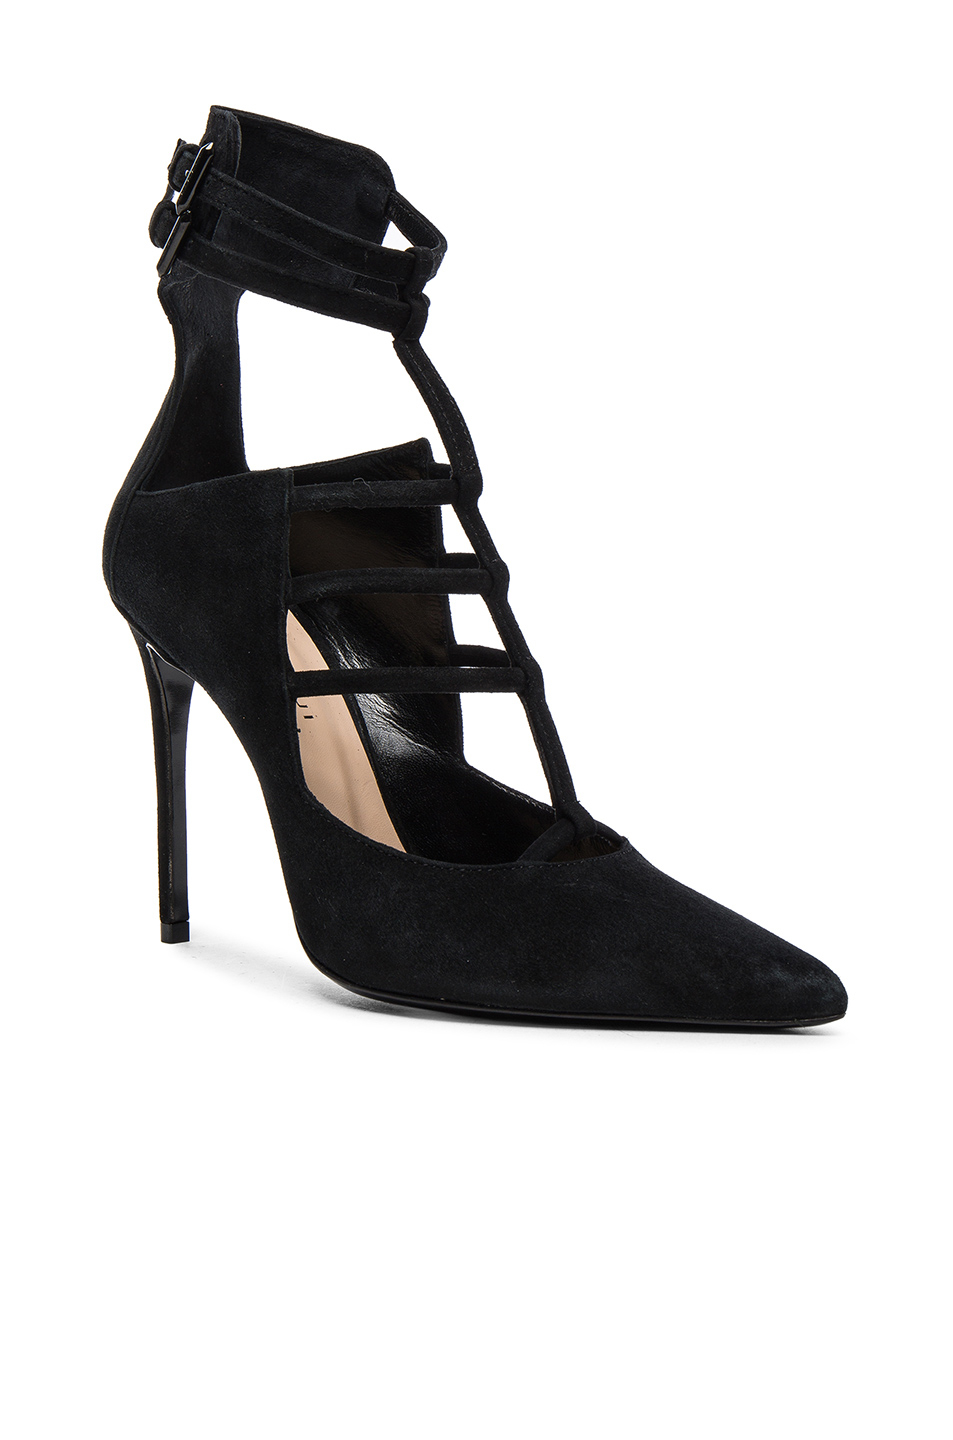 Barbara Bui Suede Pointed-Toe Pumps for sale for sale uKKia